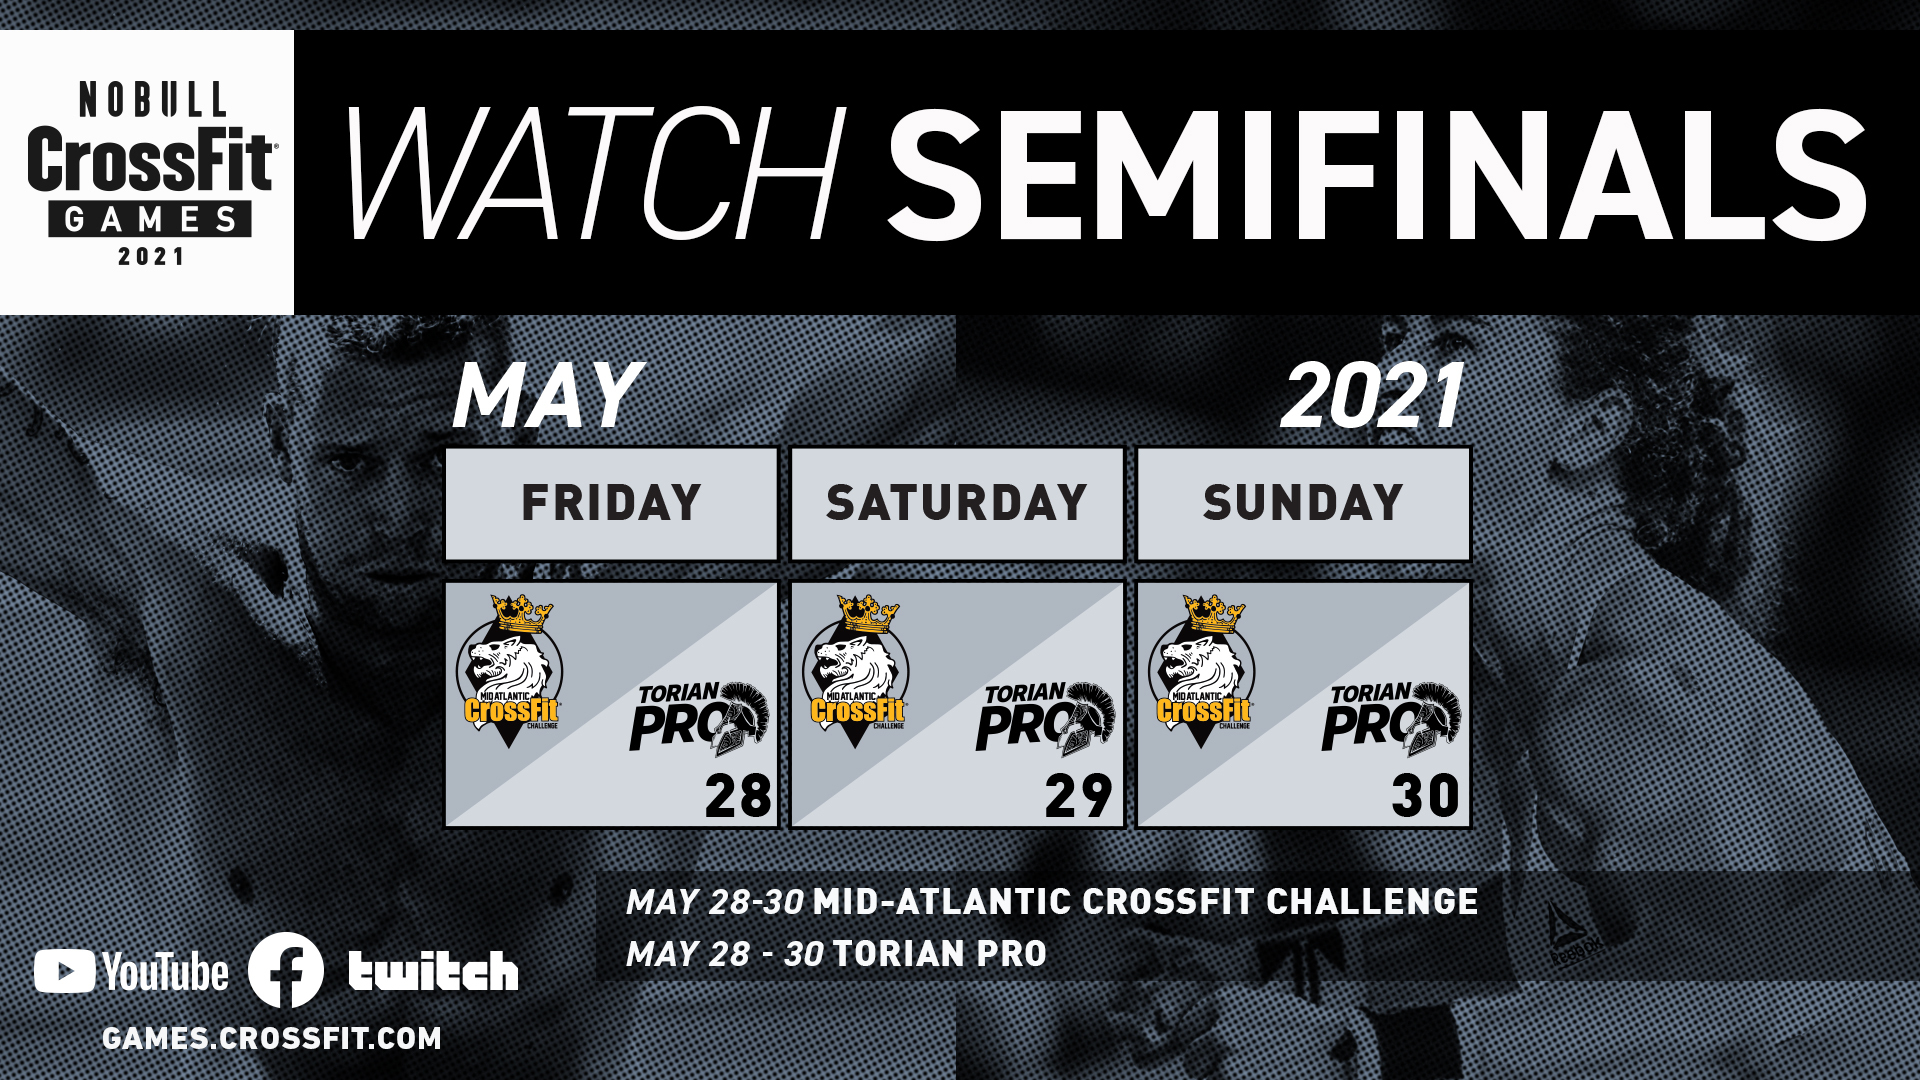 Week 1 How to Watch Graphics Semifinals